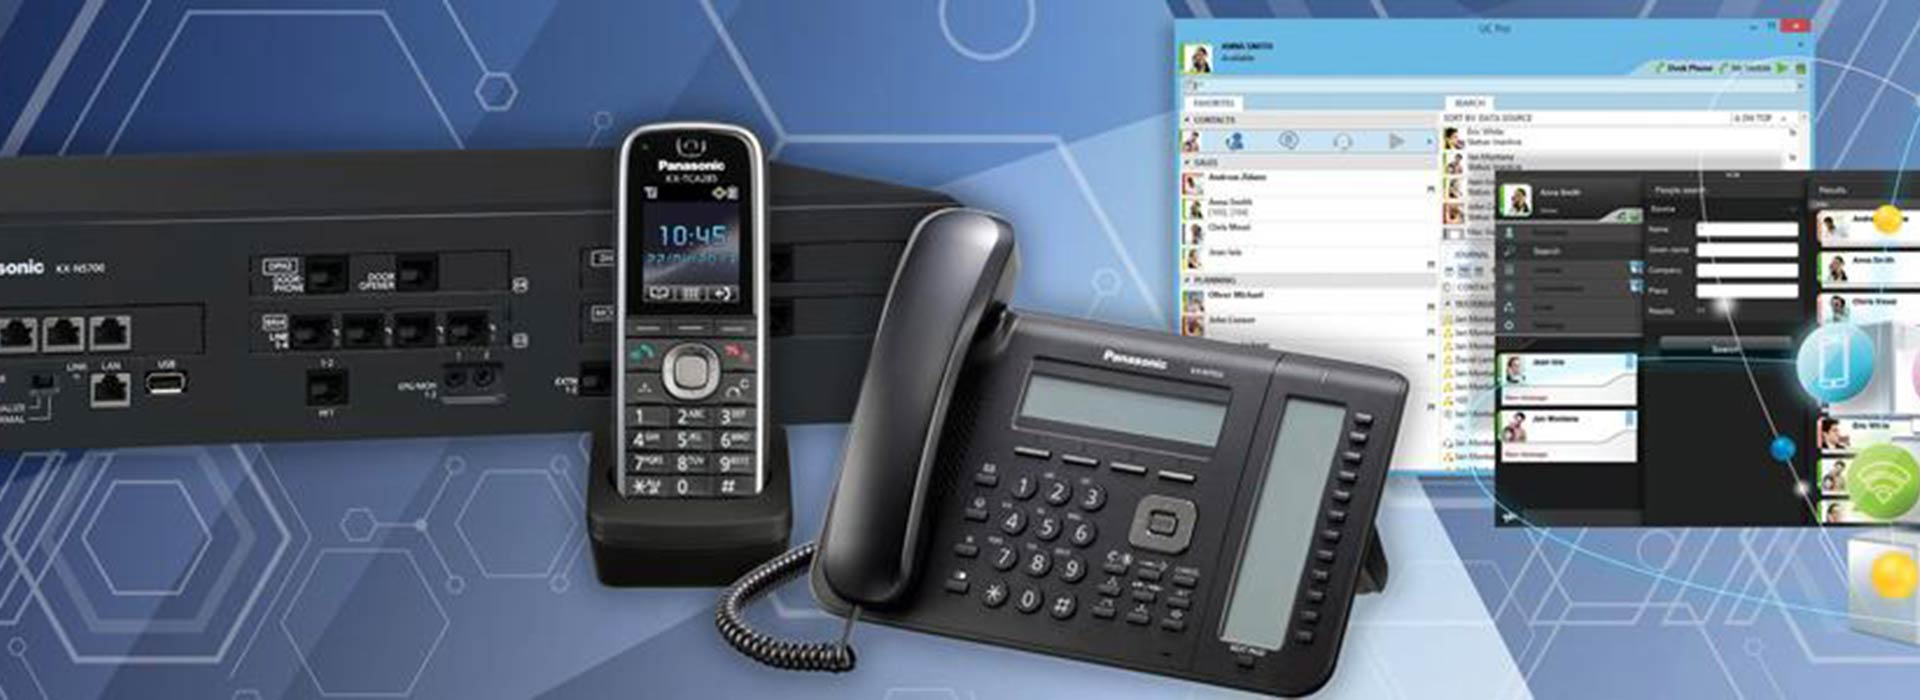 telephone platforms for any size of business